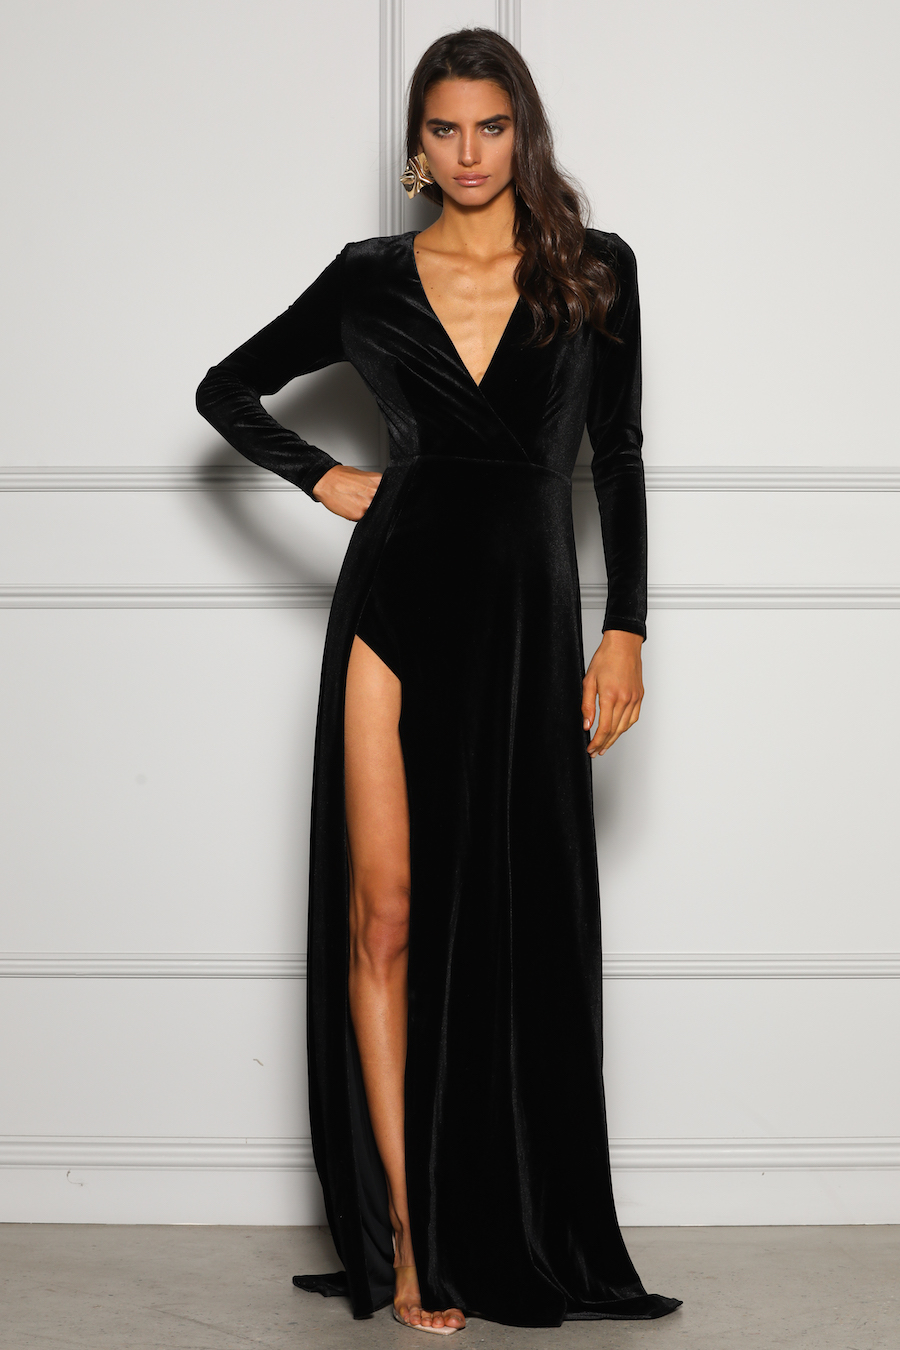 Beautiful full length dress with long sleeves featuring a deep v neckline and high split in soft velvet